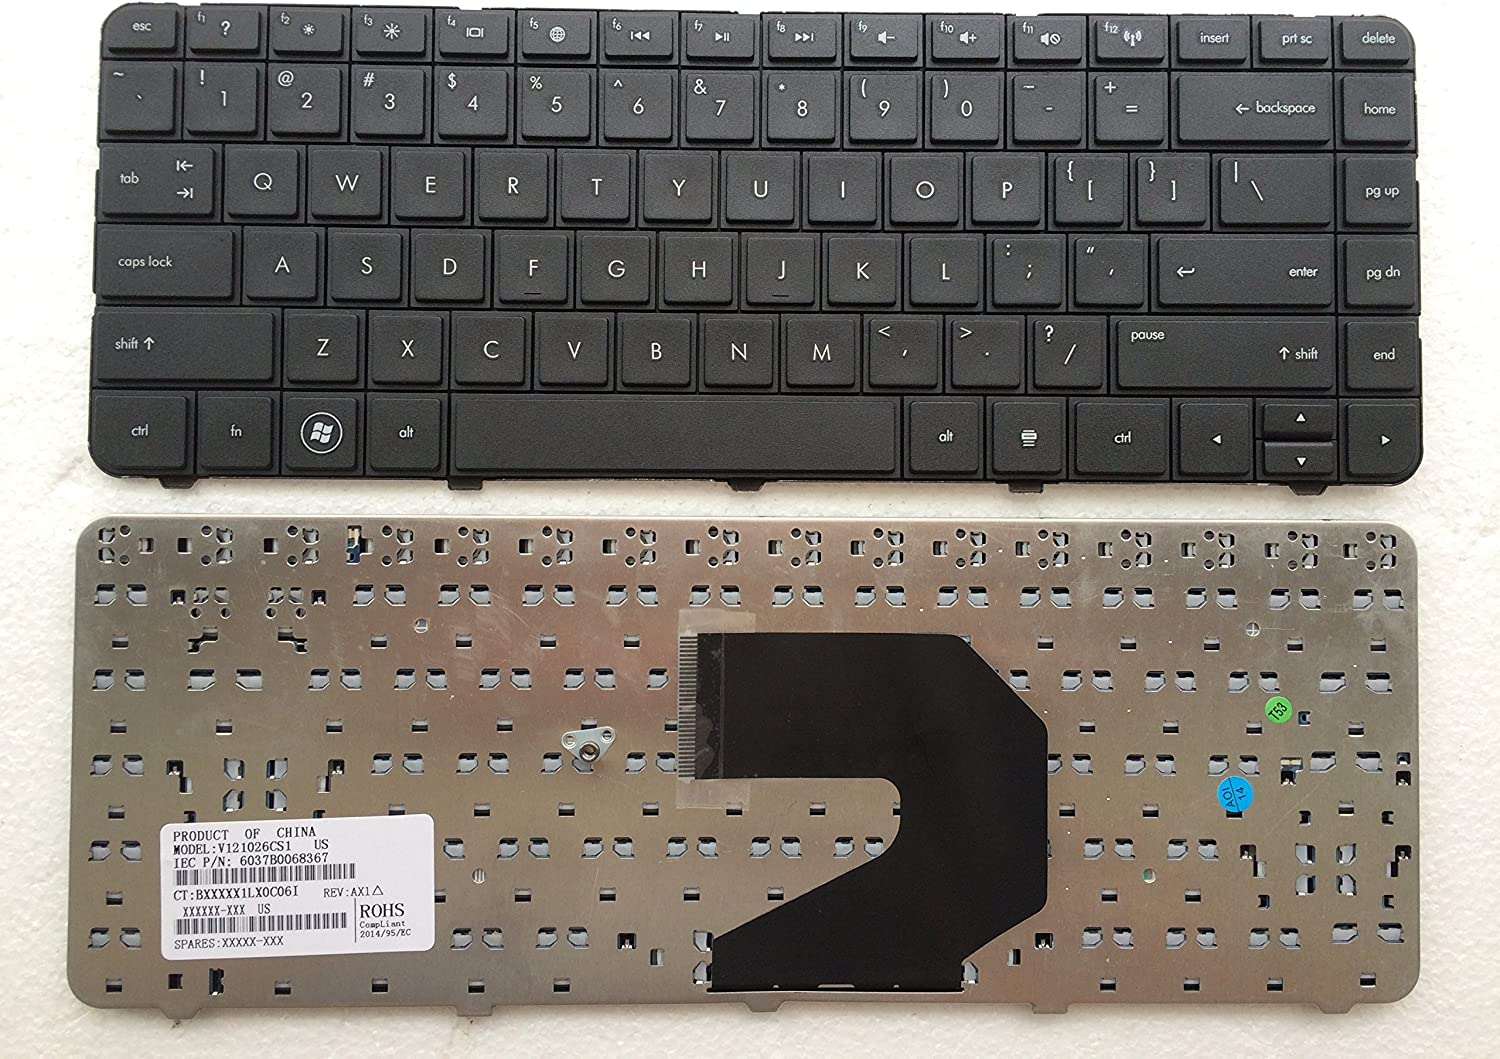 Laptop Keyboard Replacement for HP Pavilion G4 G6 CQ43 G43 CQ43-100 CQ57 CQ58 430 2000 1000 240 G1 245 G1 246 G1 255 G1 250 G1 Compaq 430 431 630 631 636 450 455 650 655 Laptop US Layout